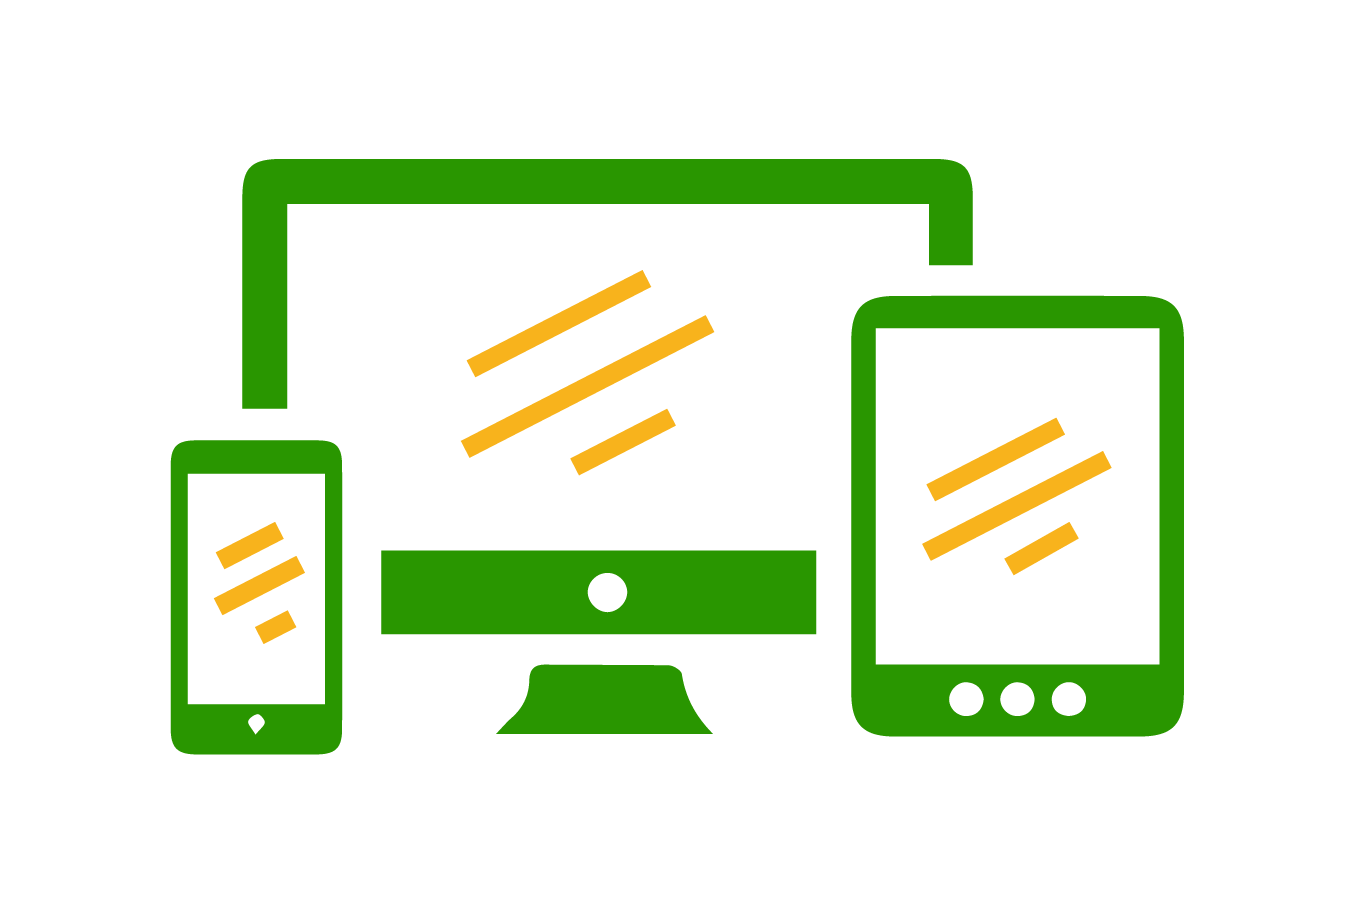 Responsive design across desktop, mobile, and tablet